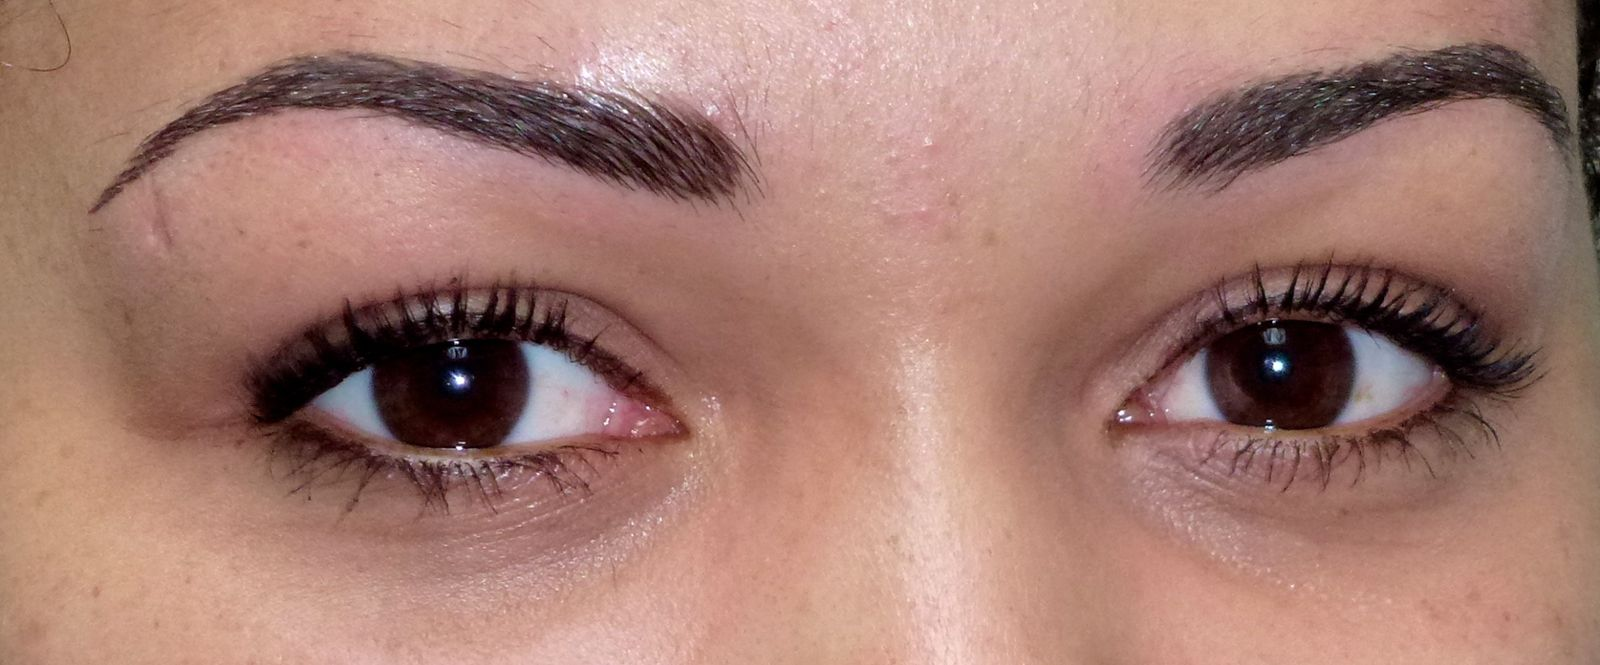 Album sourcils maquillage permanent paris nancy - Maquillage permanent sourcil poil poil ...